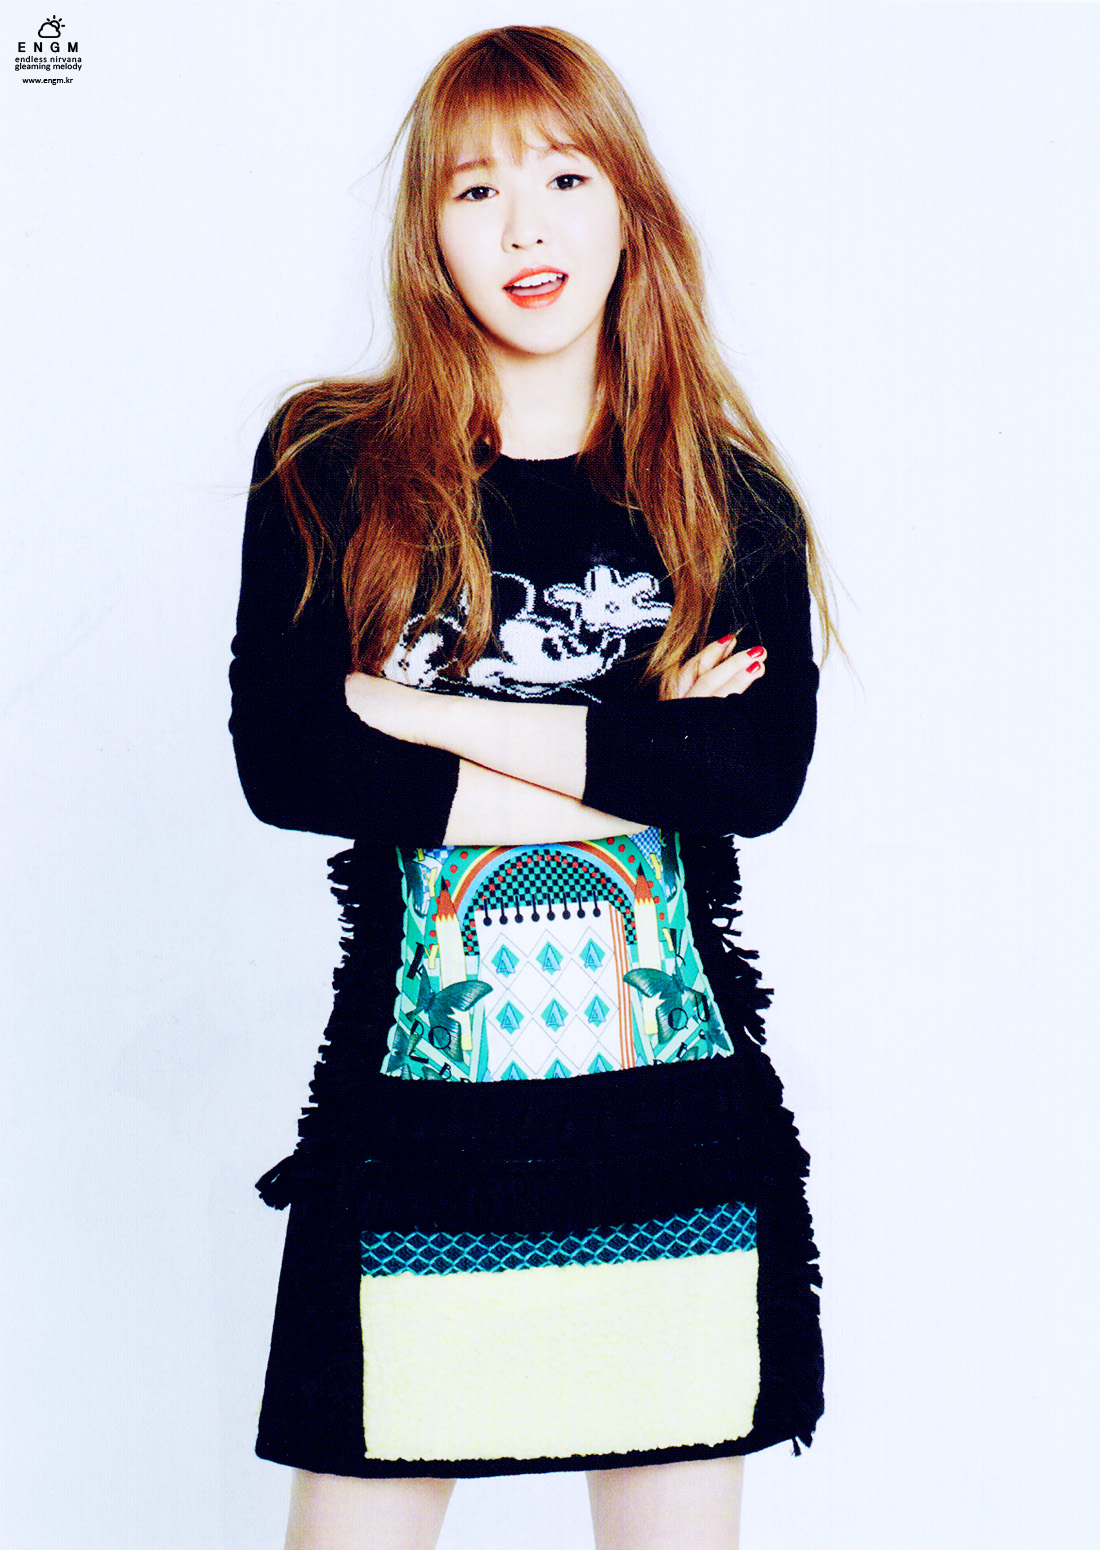 Wendy Android Iphone Wallpaper 30495 Asiachan Kpop Image Board